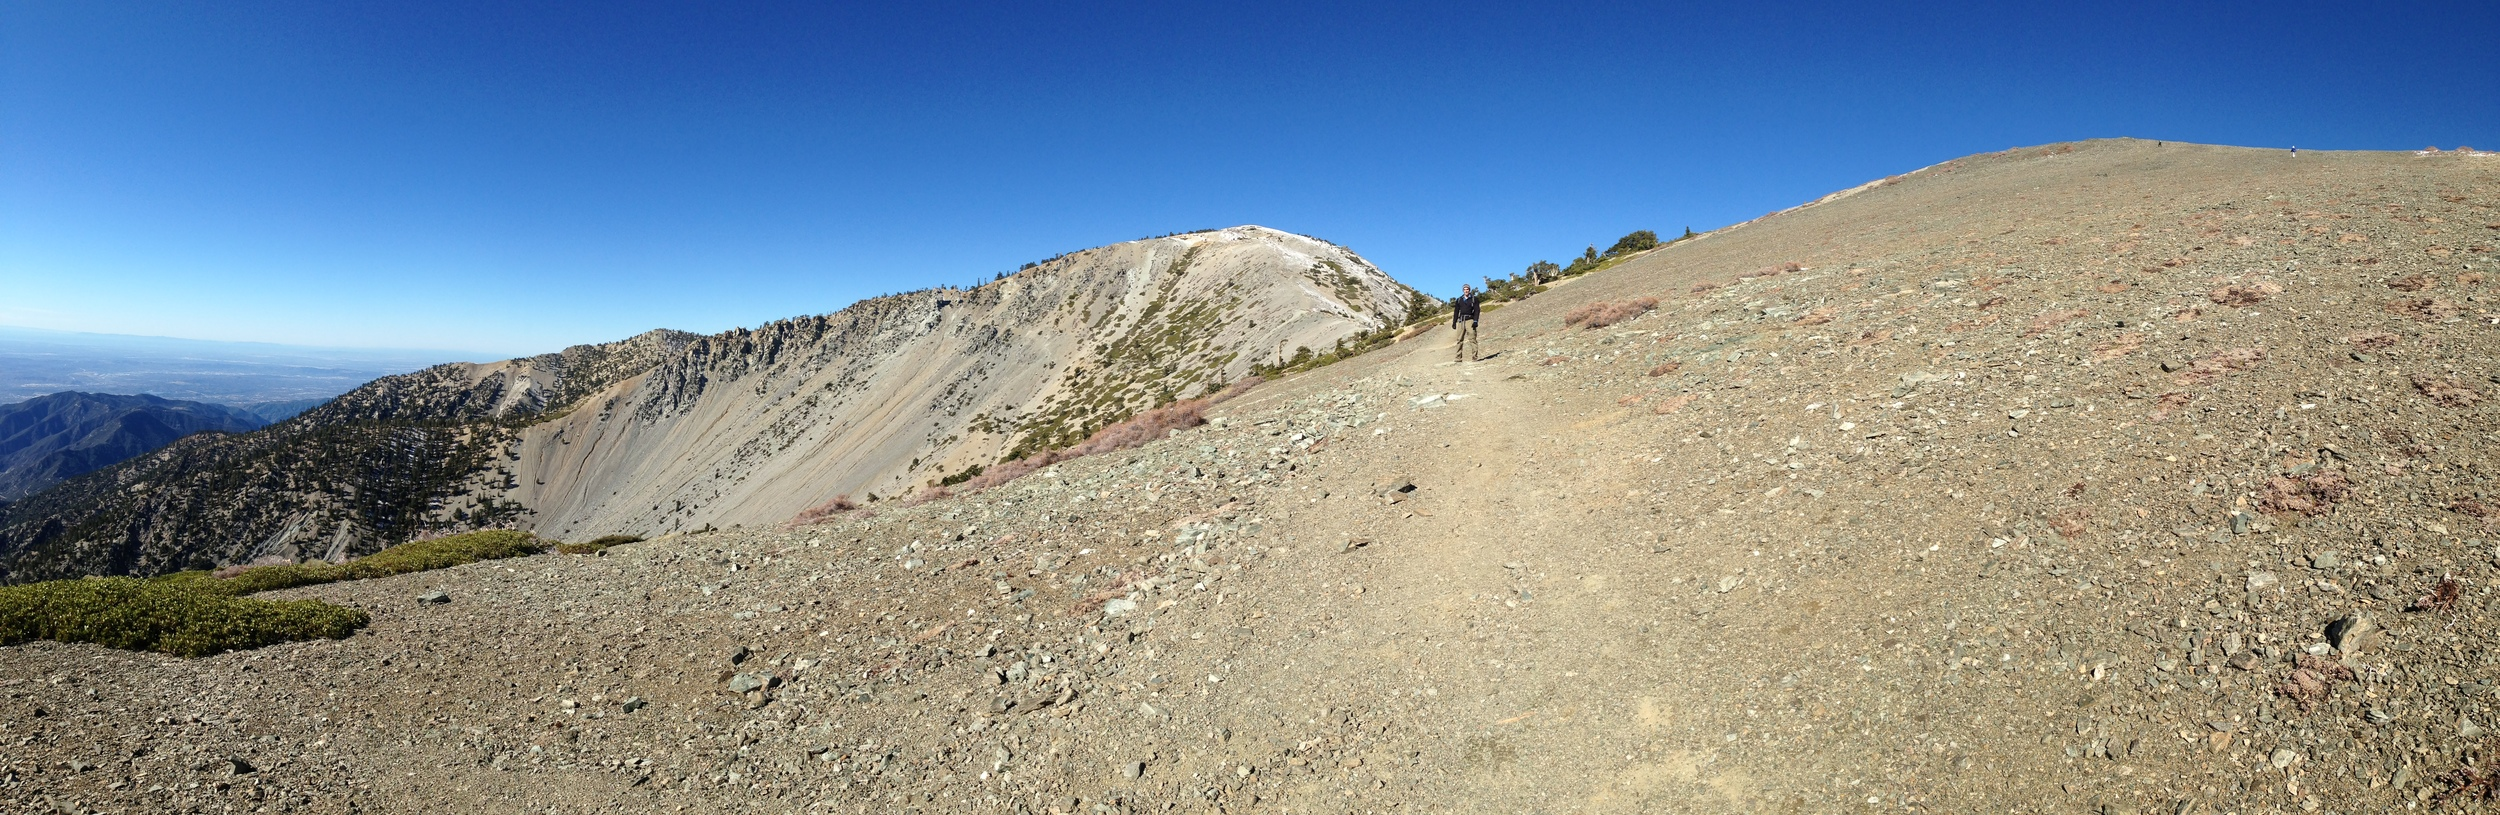 The final approach up to the Baldy Summit.  I'm there on the trail looking tiny.